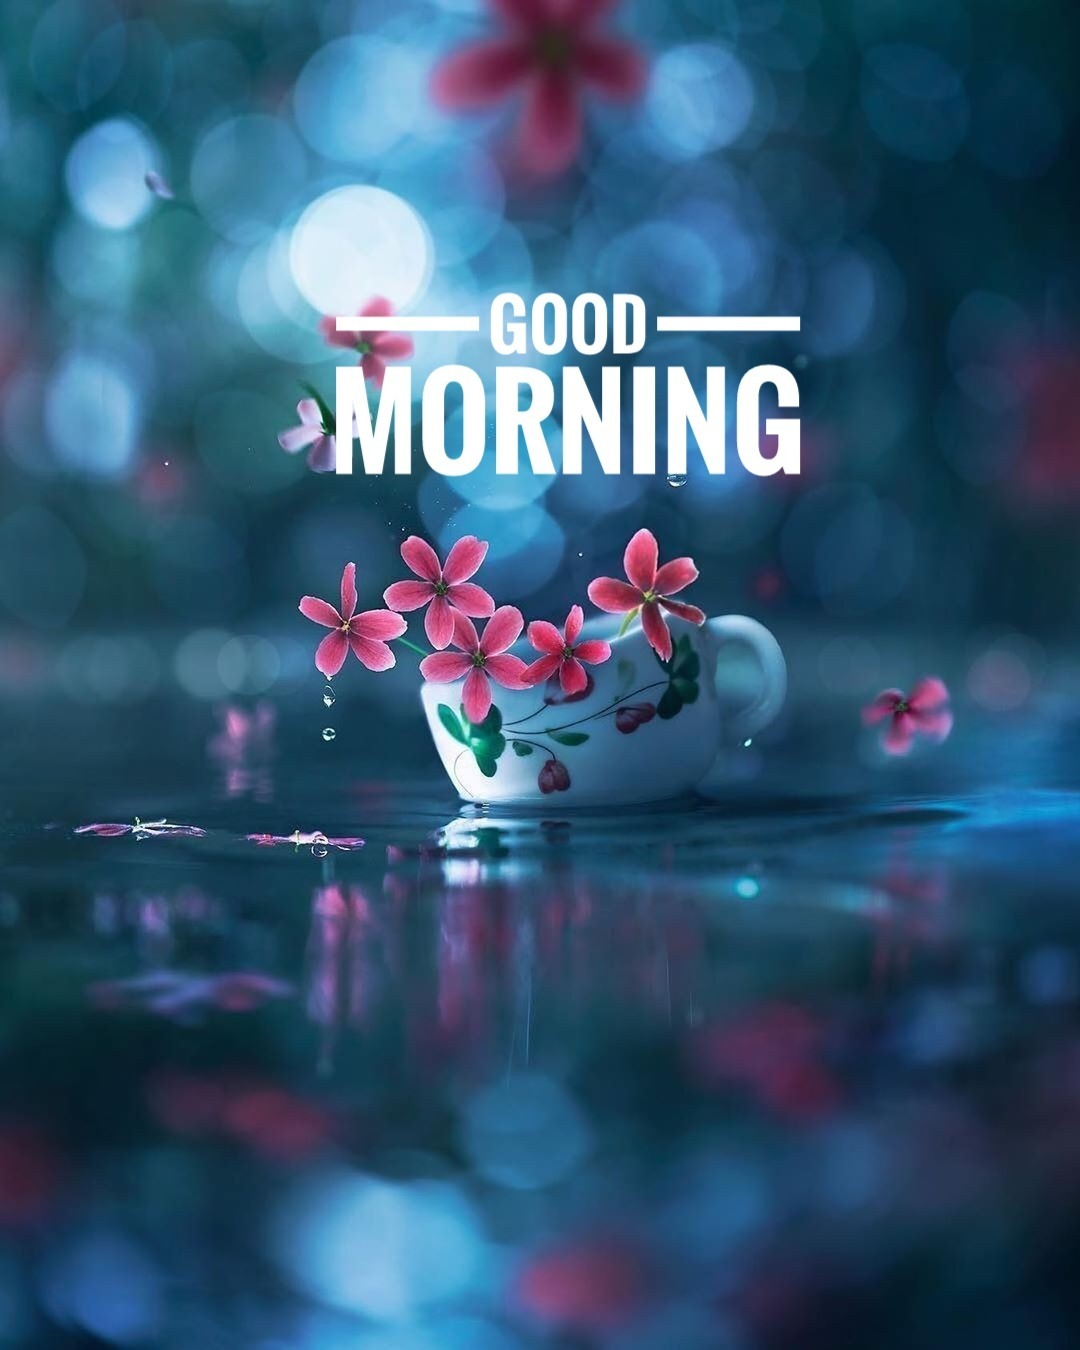 good morning images hd 1080p download 2020